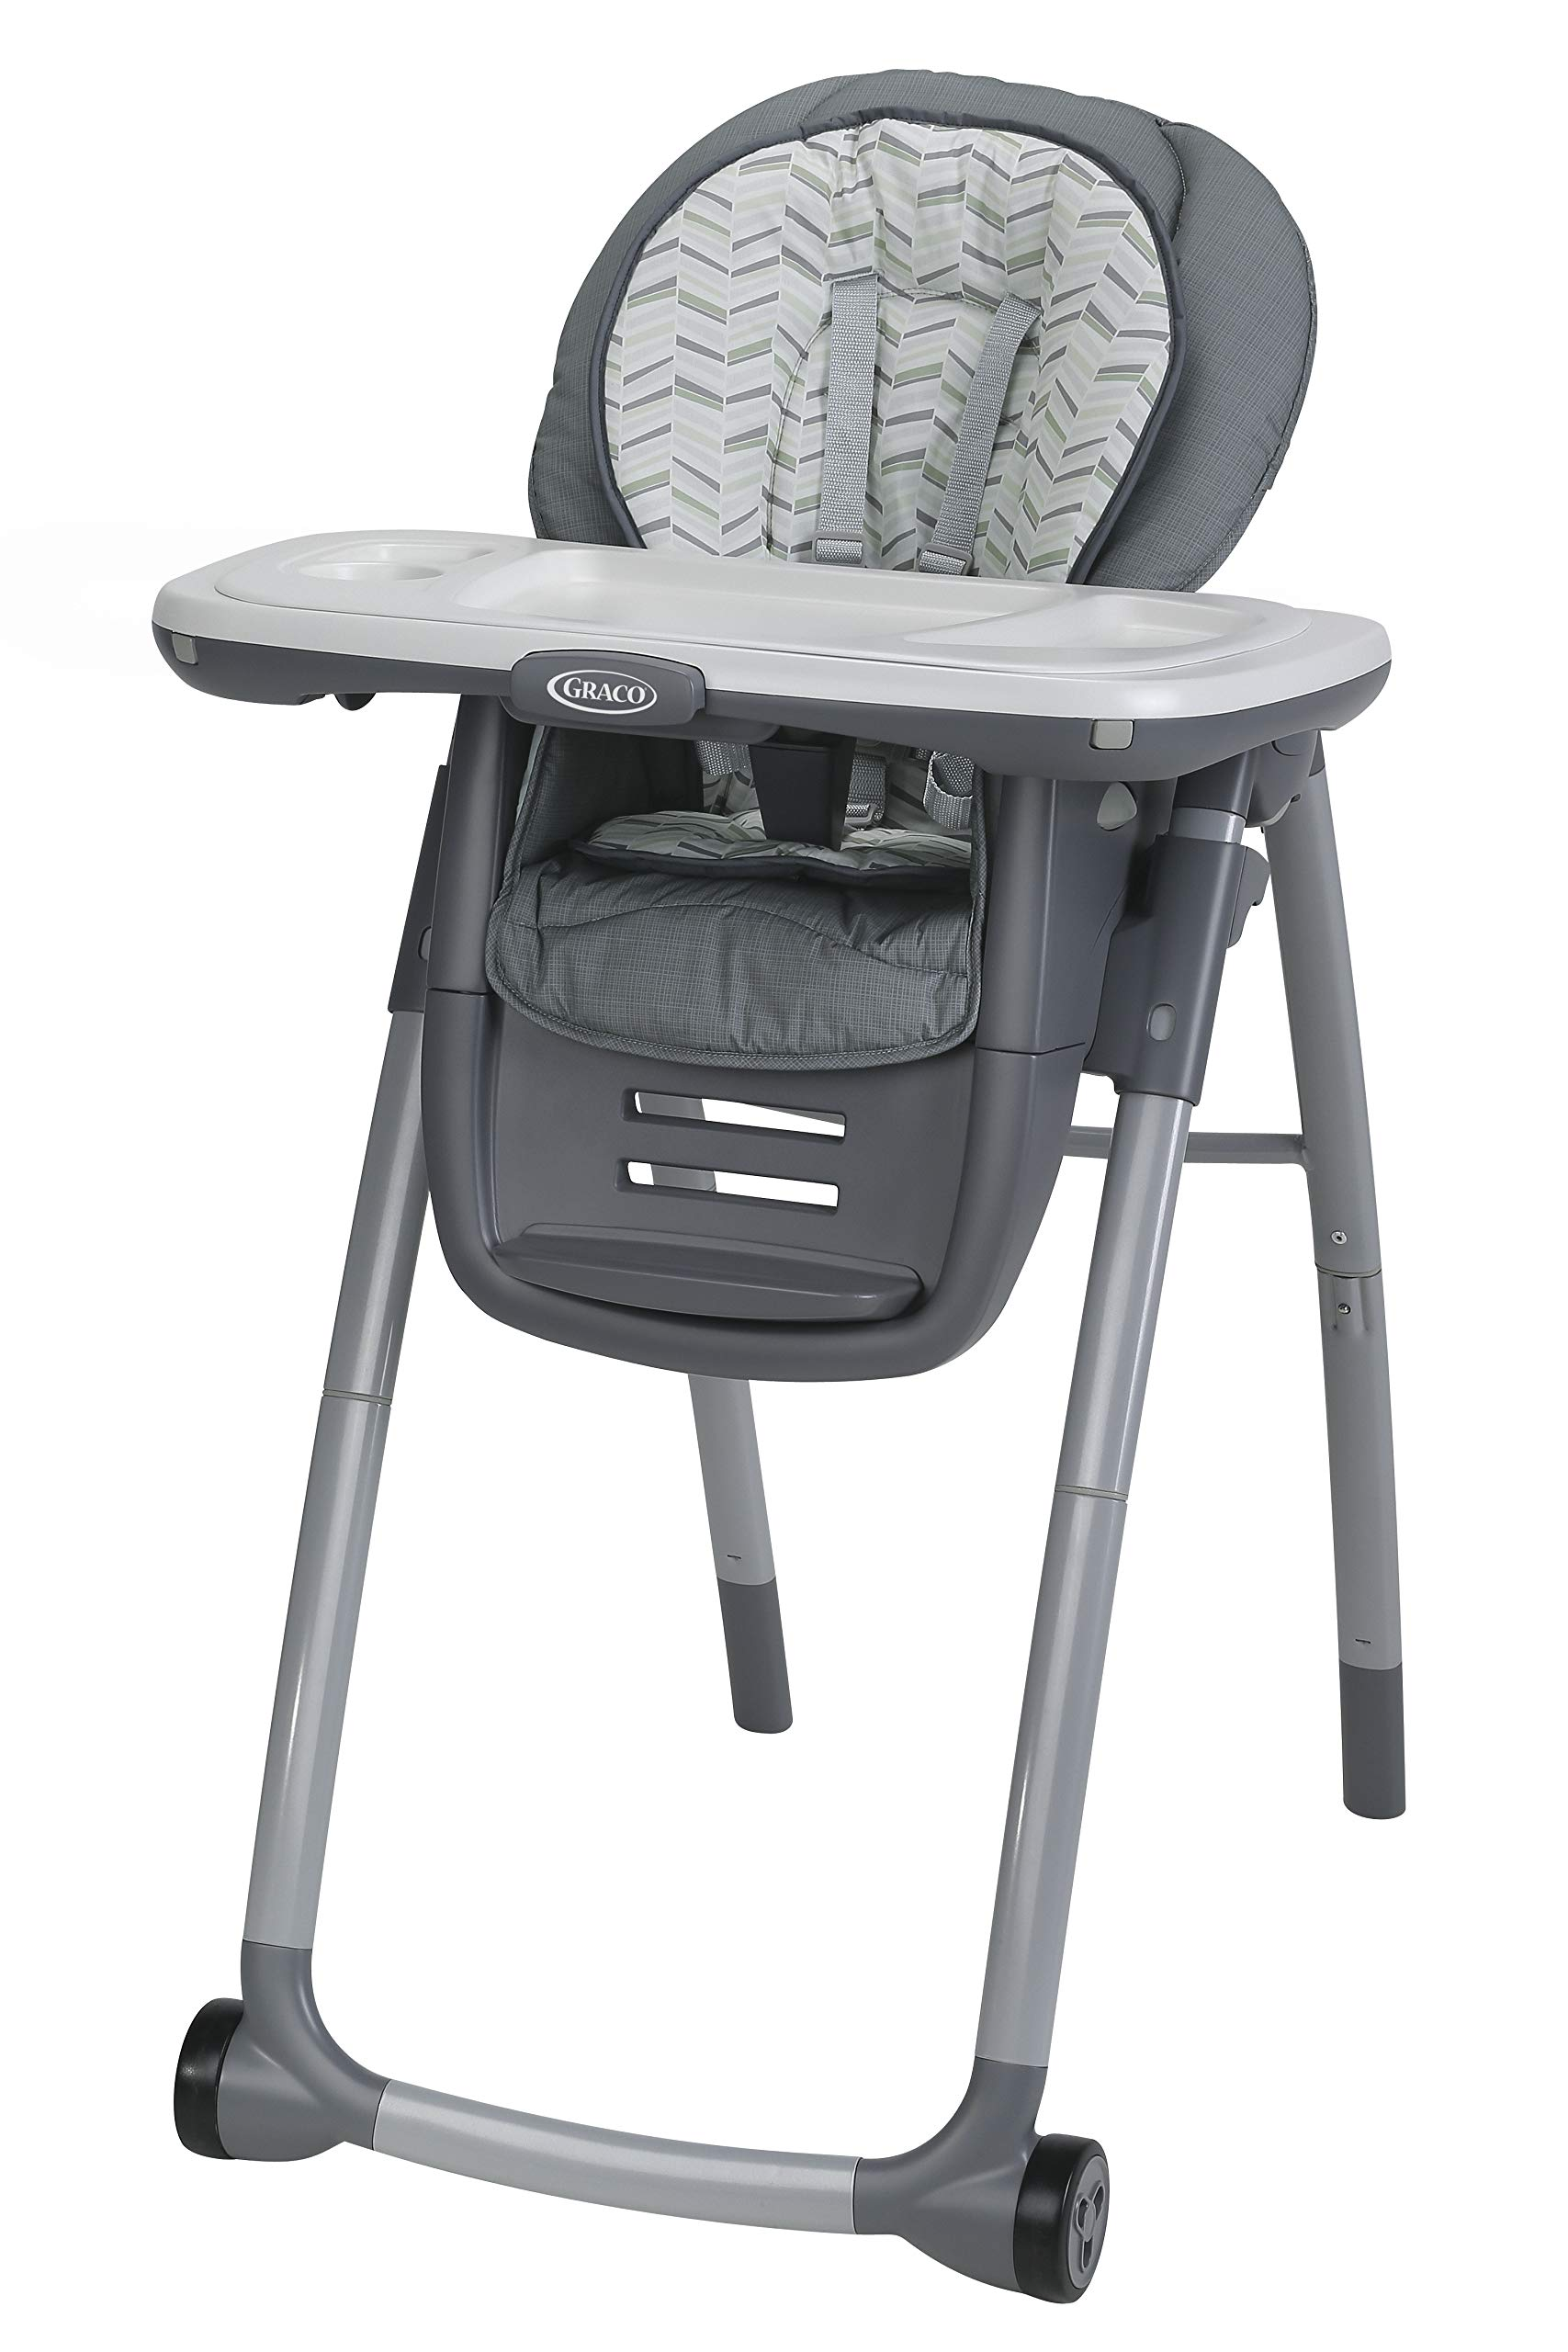 Graco Table2Table Premier Fold 7-in-1 Convertible High Chair, Landry, One Size by Graco (Image #1)